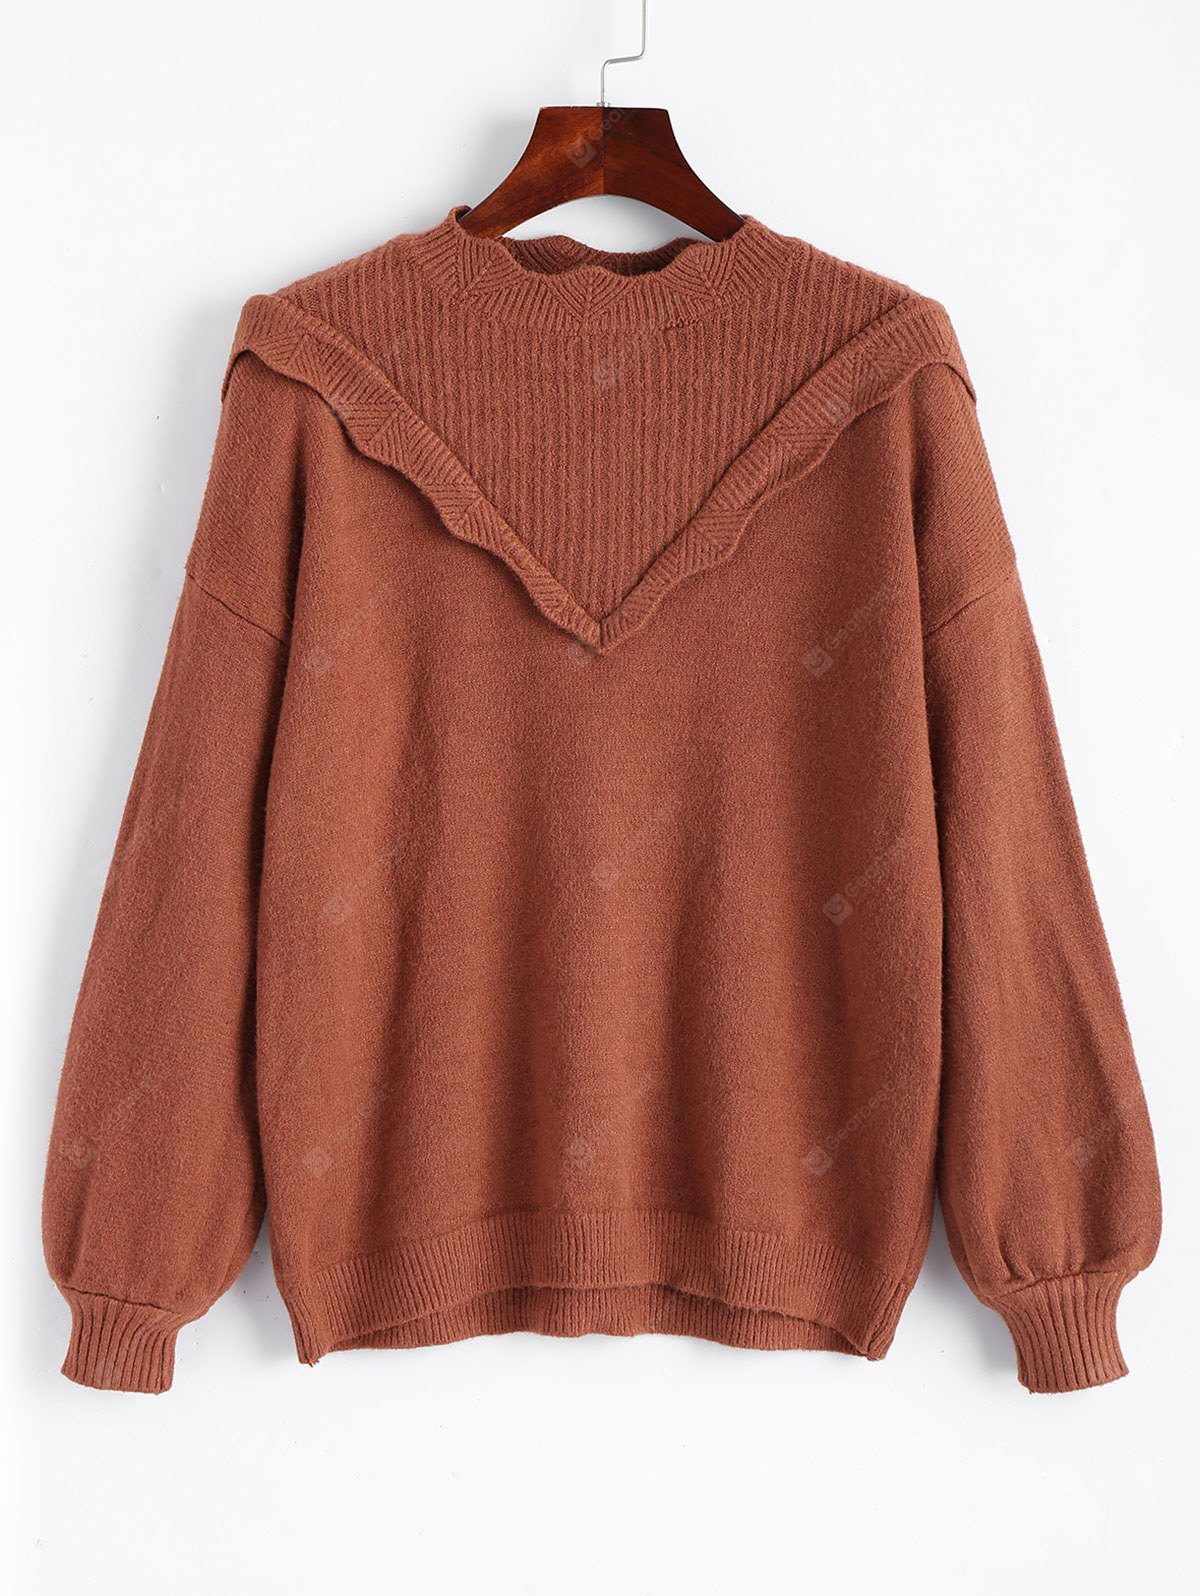 Scalloped Ruffles Pullover Sweater